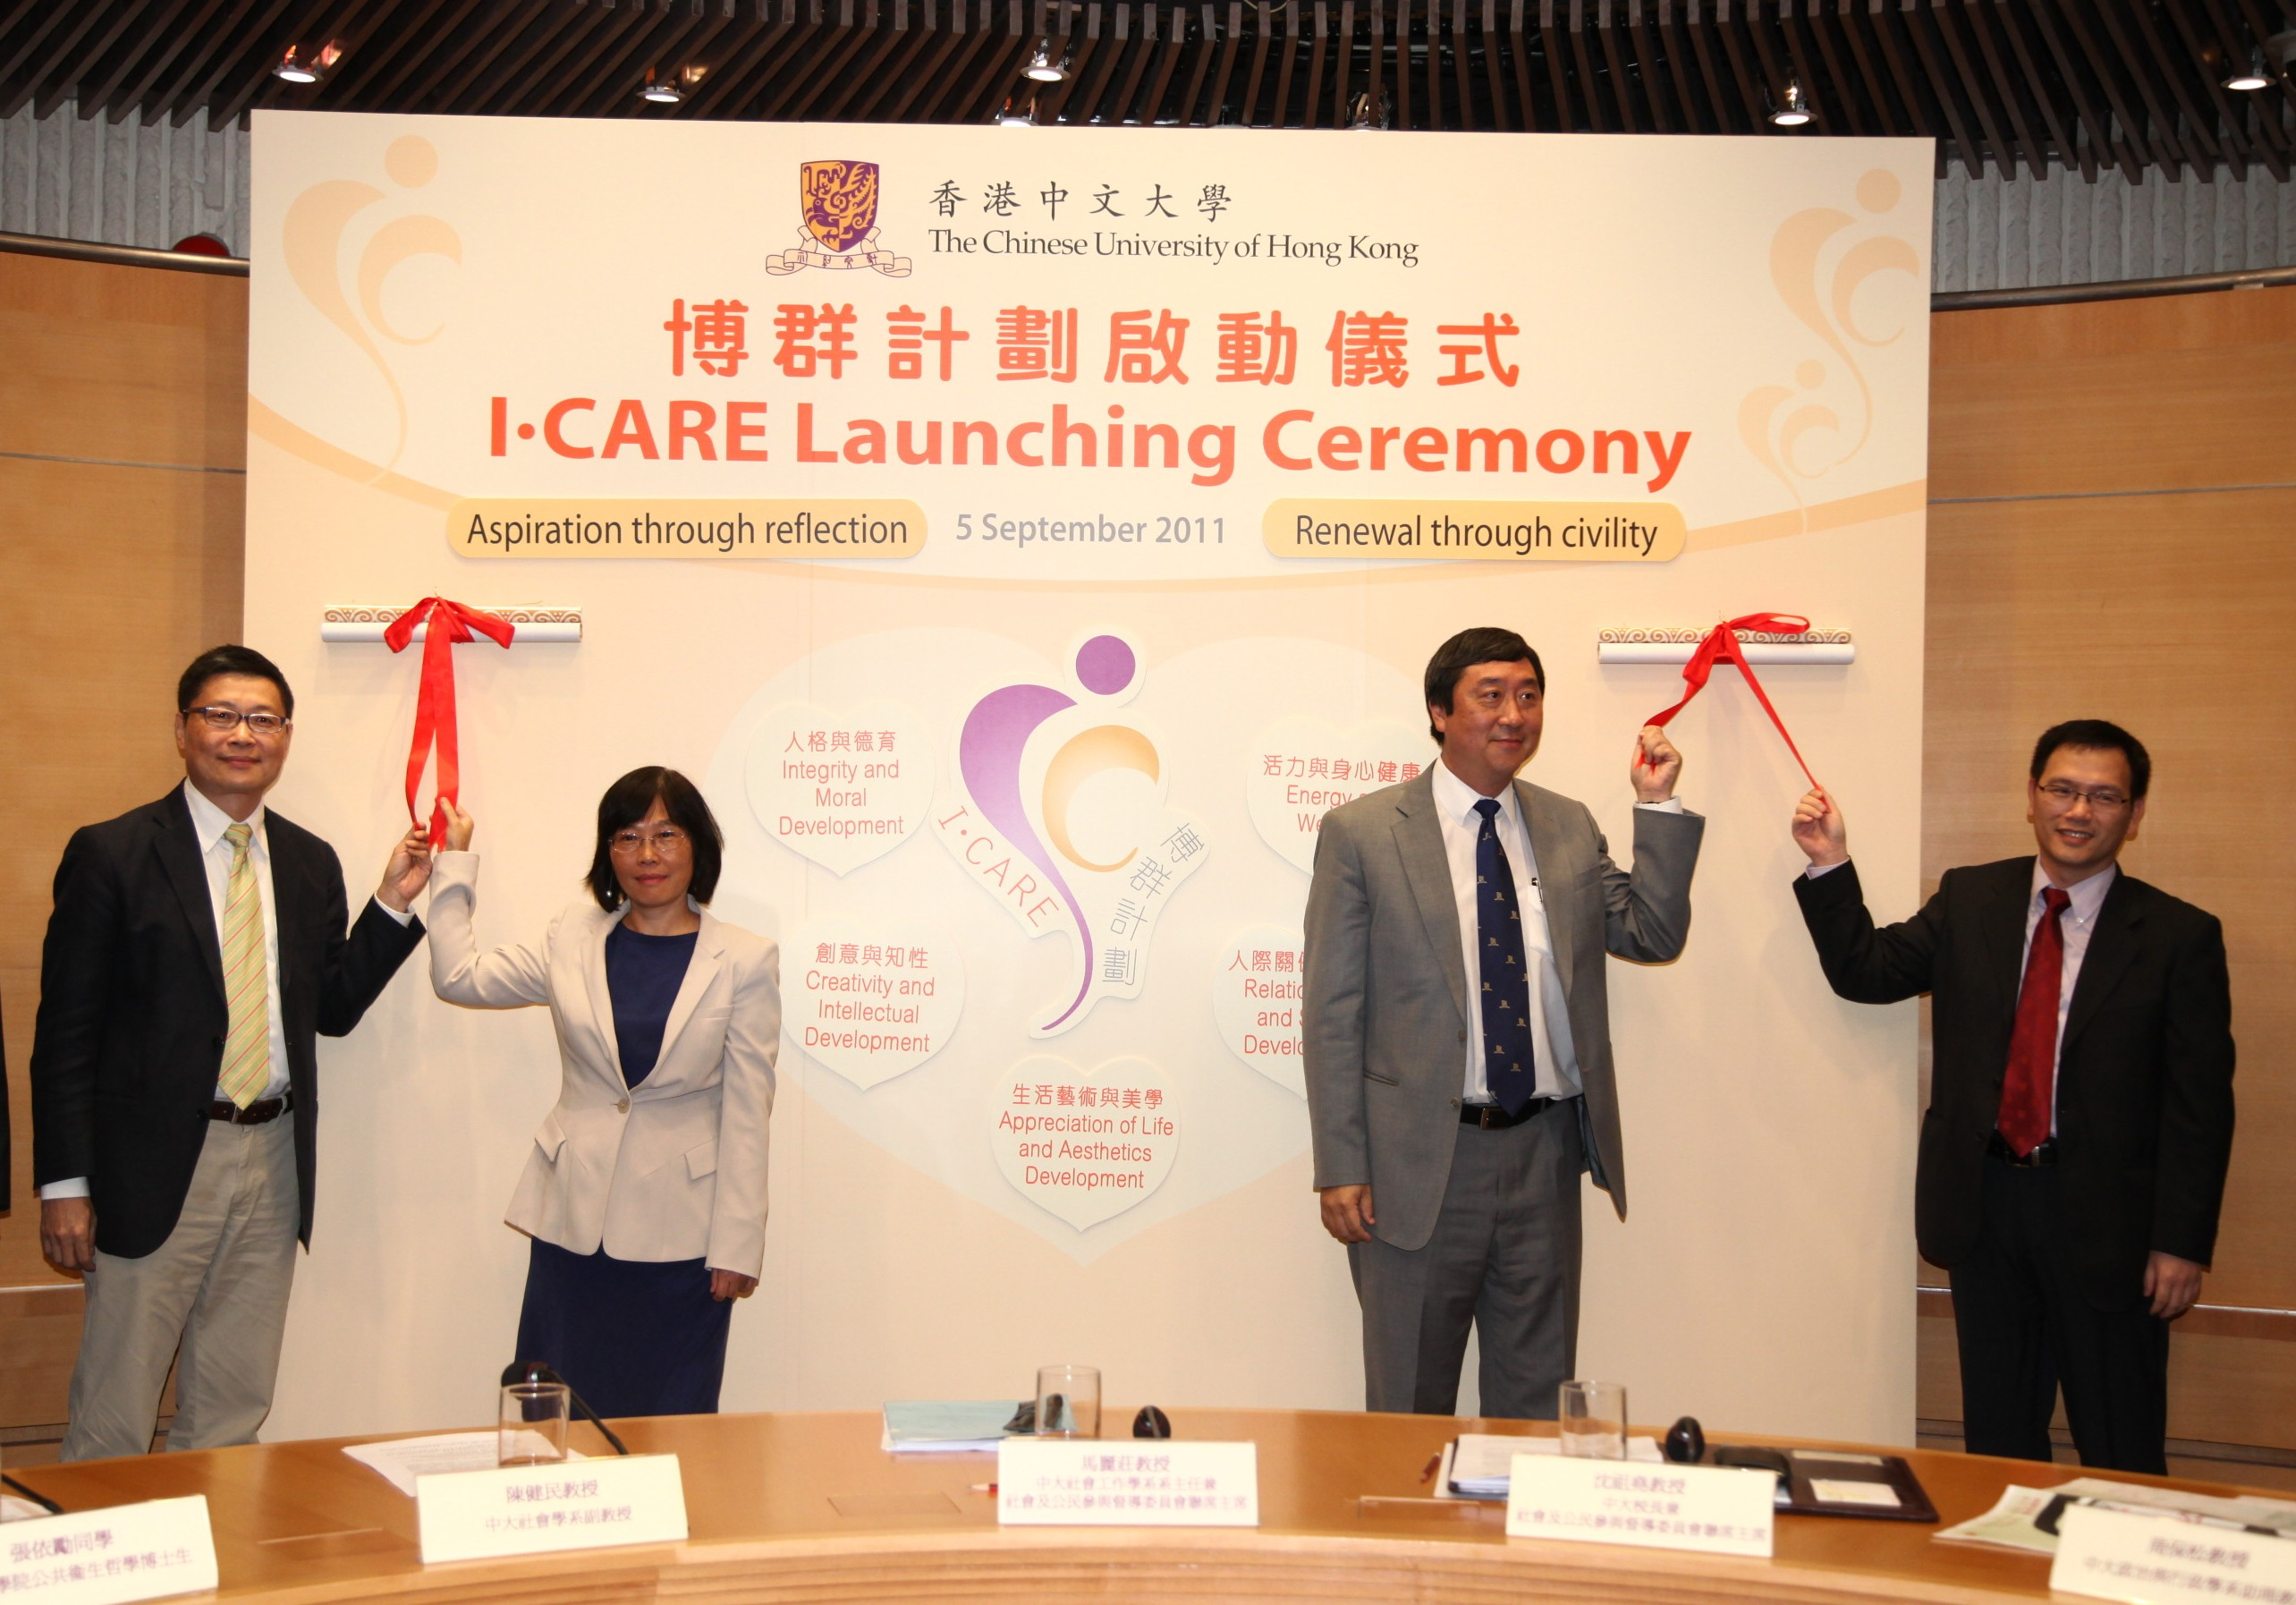 Prof. Joseph J.Y. Sung (second right), Vice-Chancellor; Prof. Joyce Ma (second left), Chairman, Department of Social Work; Prof. Chan Kin-man (first left), Associate Professor, Department of Sociology; Prof. Chow Po-chung (first right), Assistant Professor, Department of Government and Public Administration, unveil the Chinese slogan of the I‧CARE Programme to mark its launch.